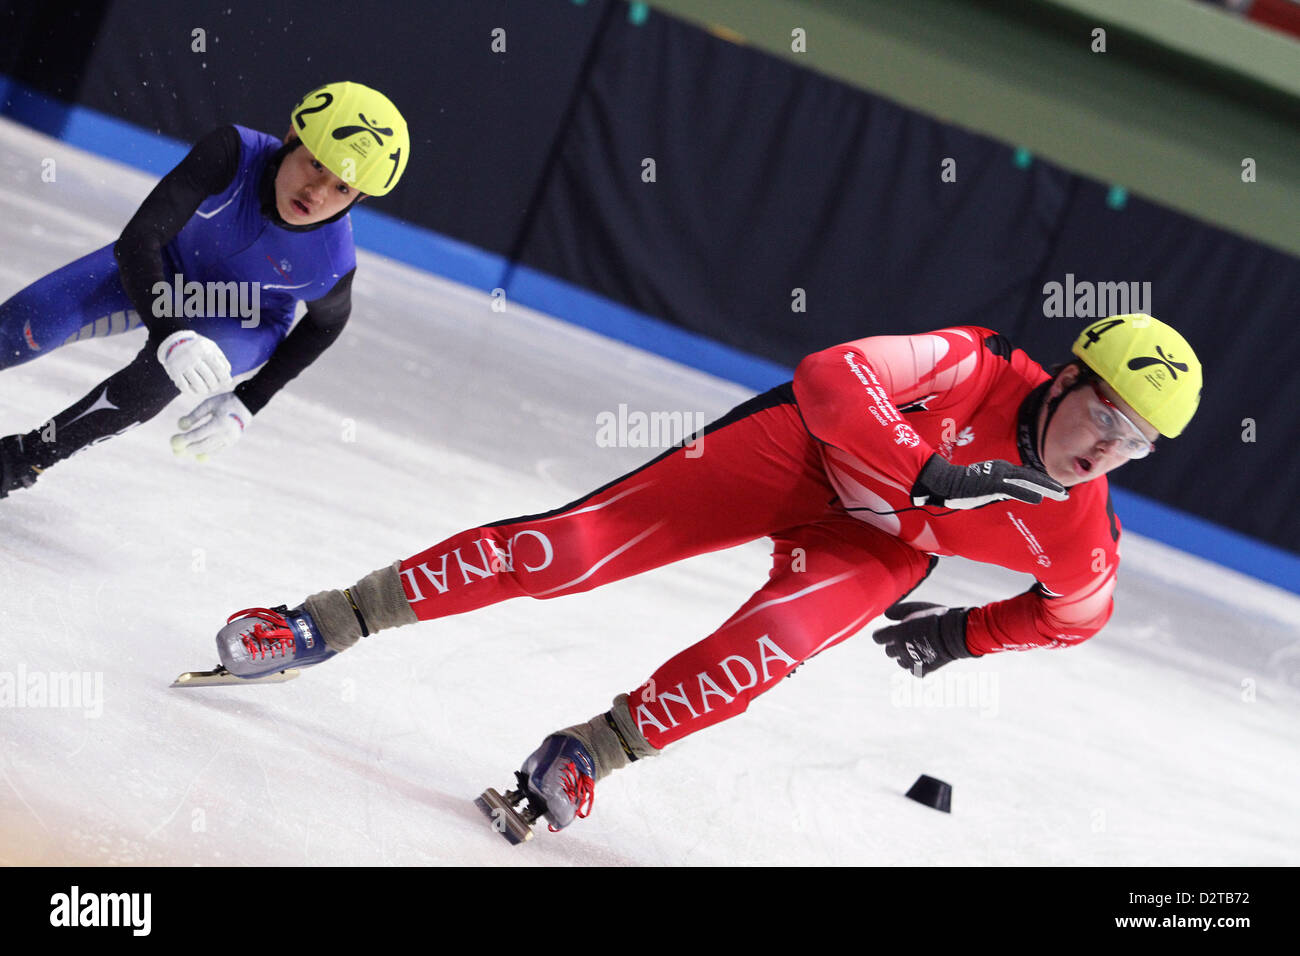 PYEONGCHANG-GUN, SOUTH KOREA - FEBRUARY 1: Athletes  perform during the 3rd day  of the 2013 Pyeongchang Special - Stock Image